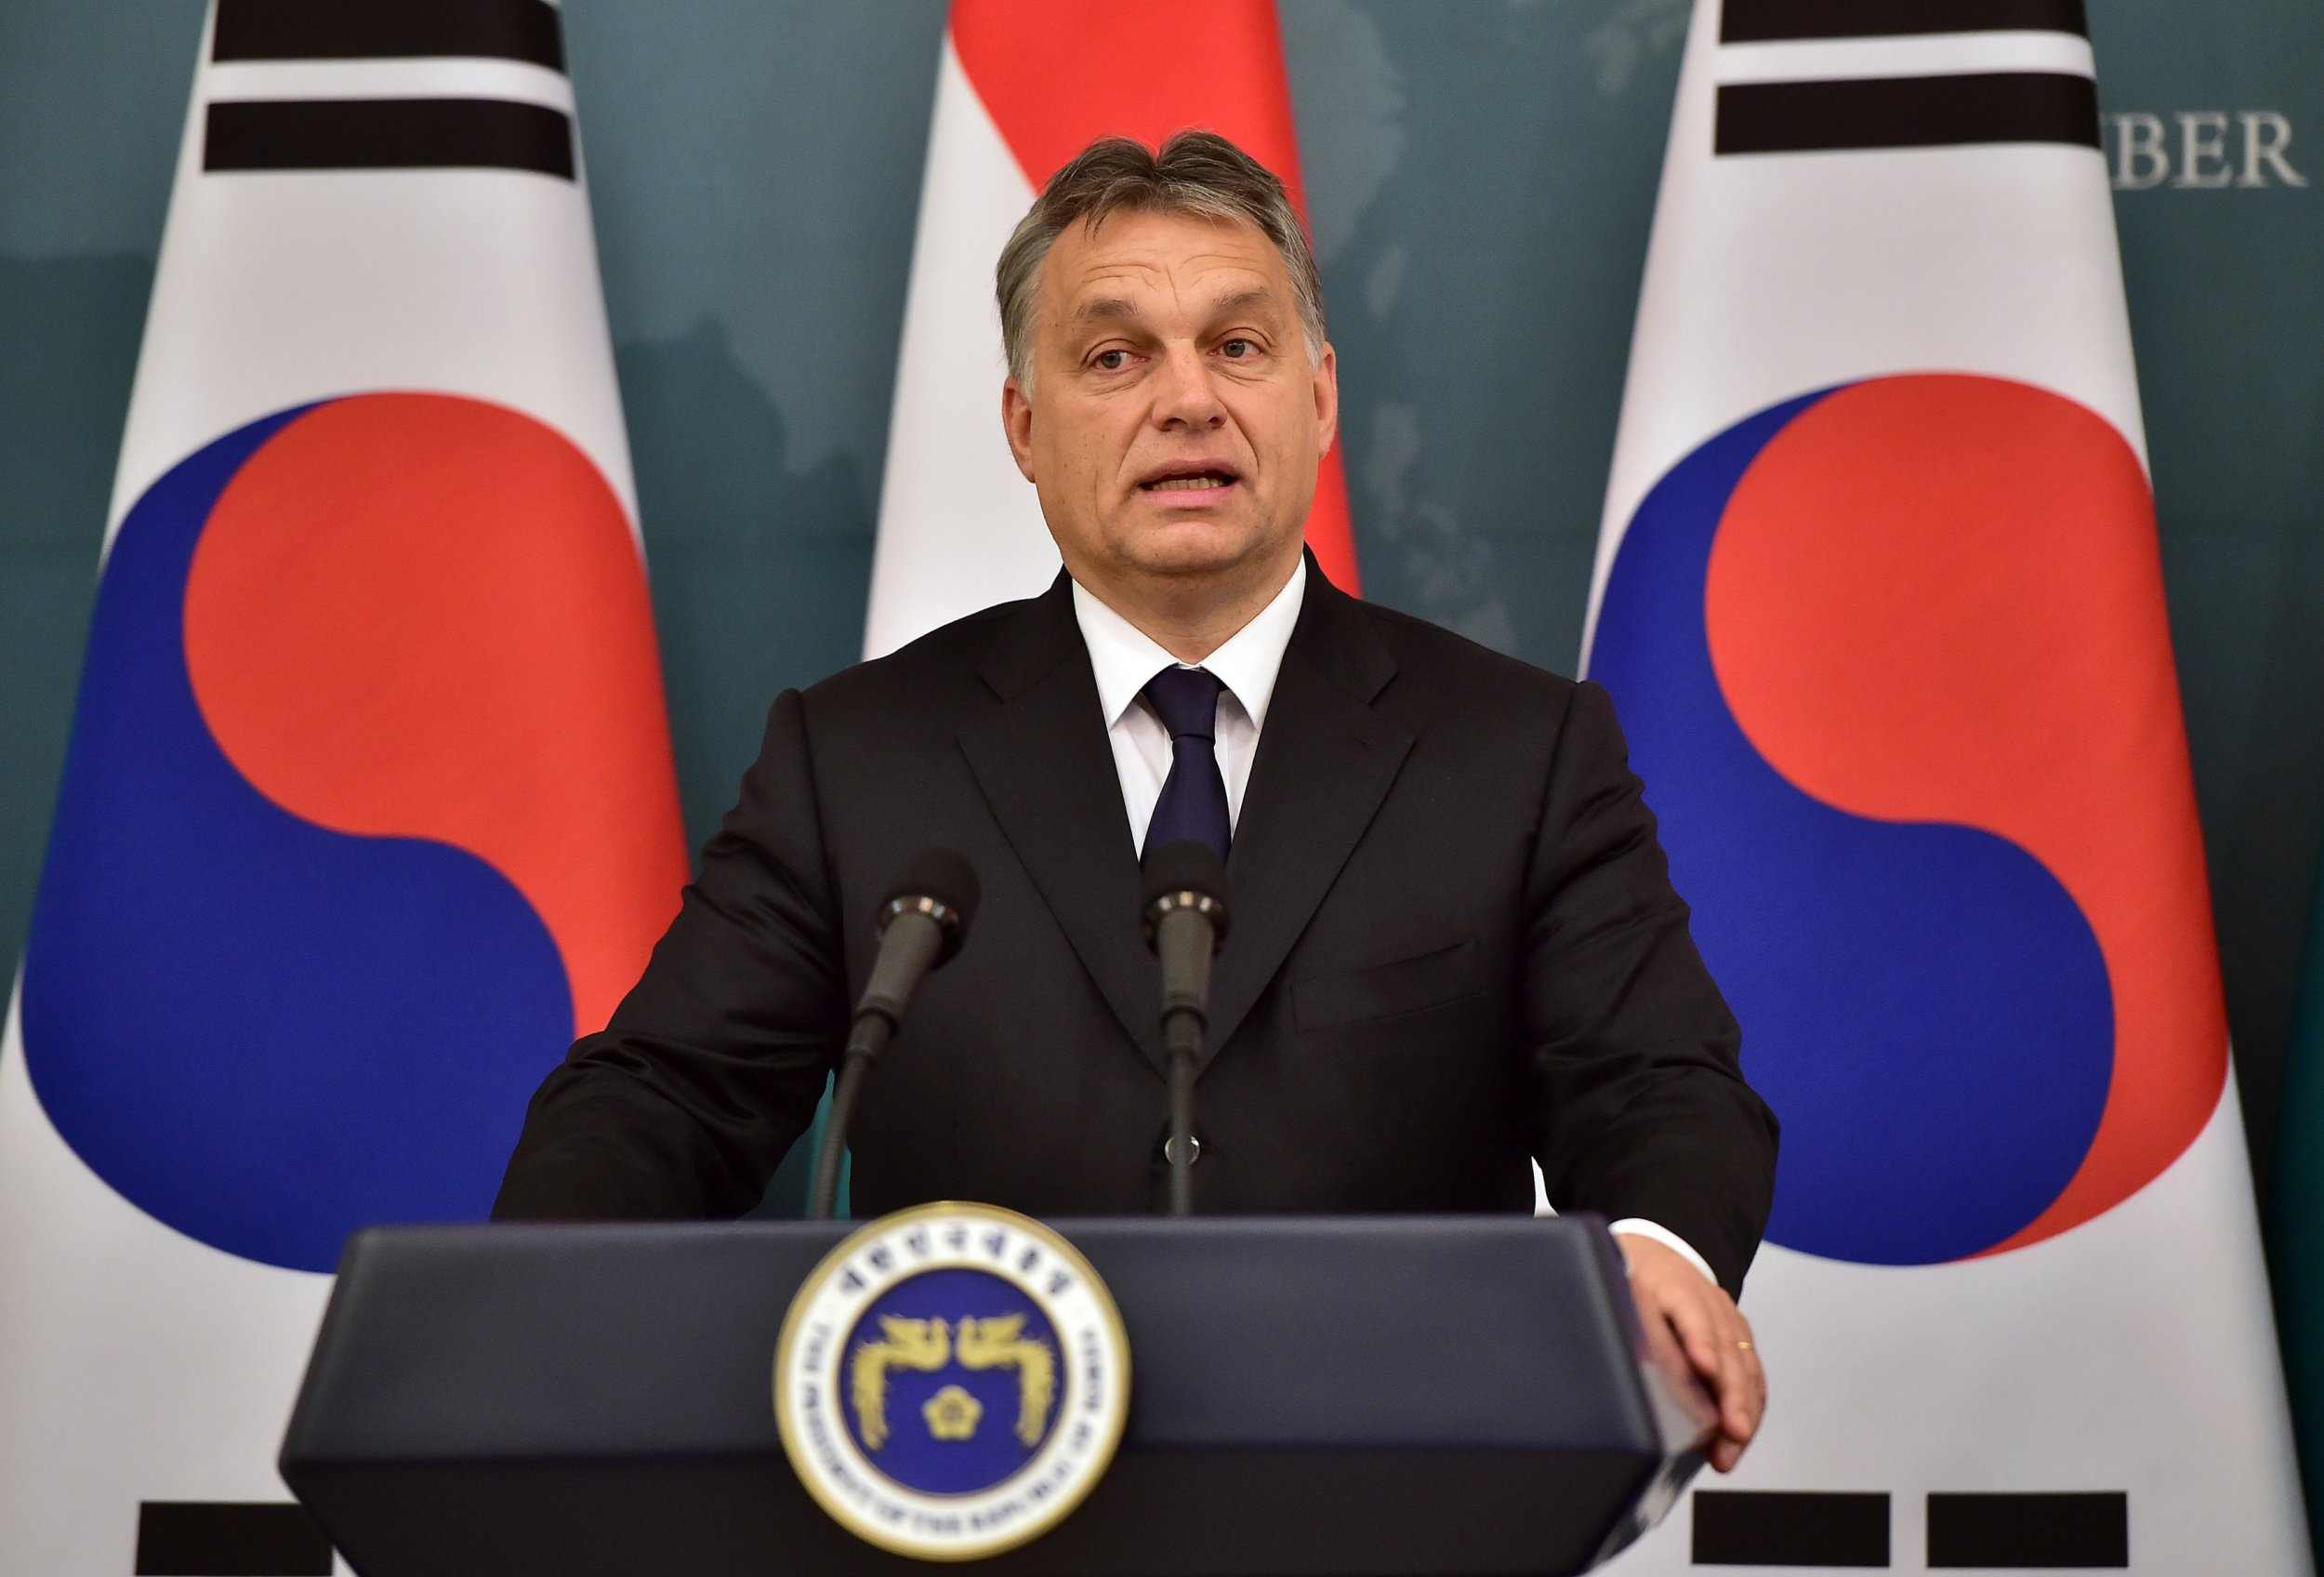 Hungary PM Orban Says Immigration a Threat and Must Be Stopped